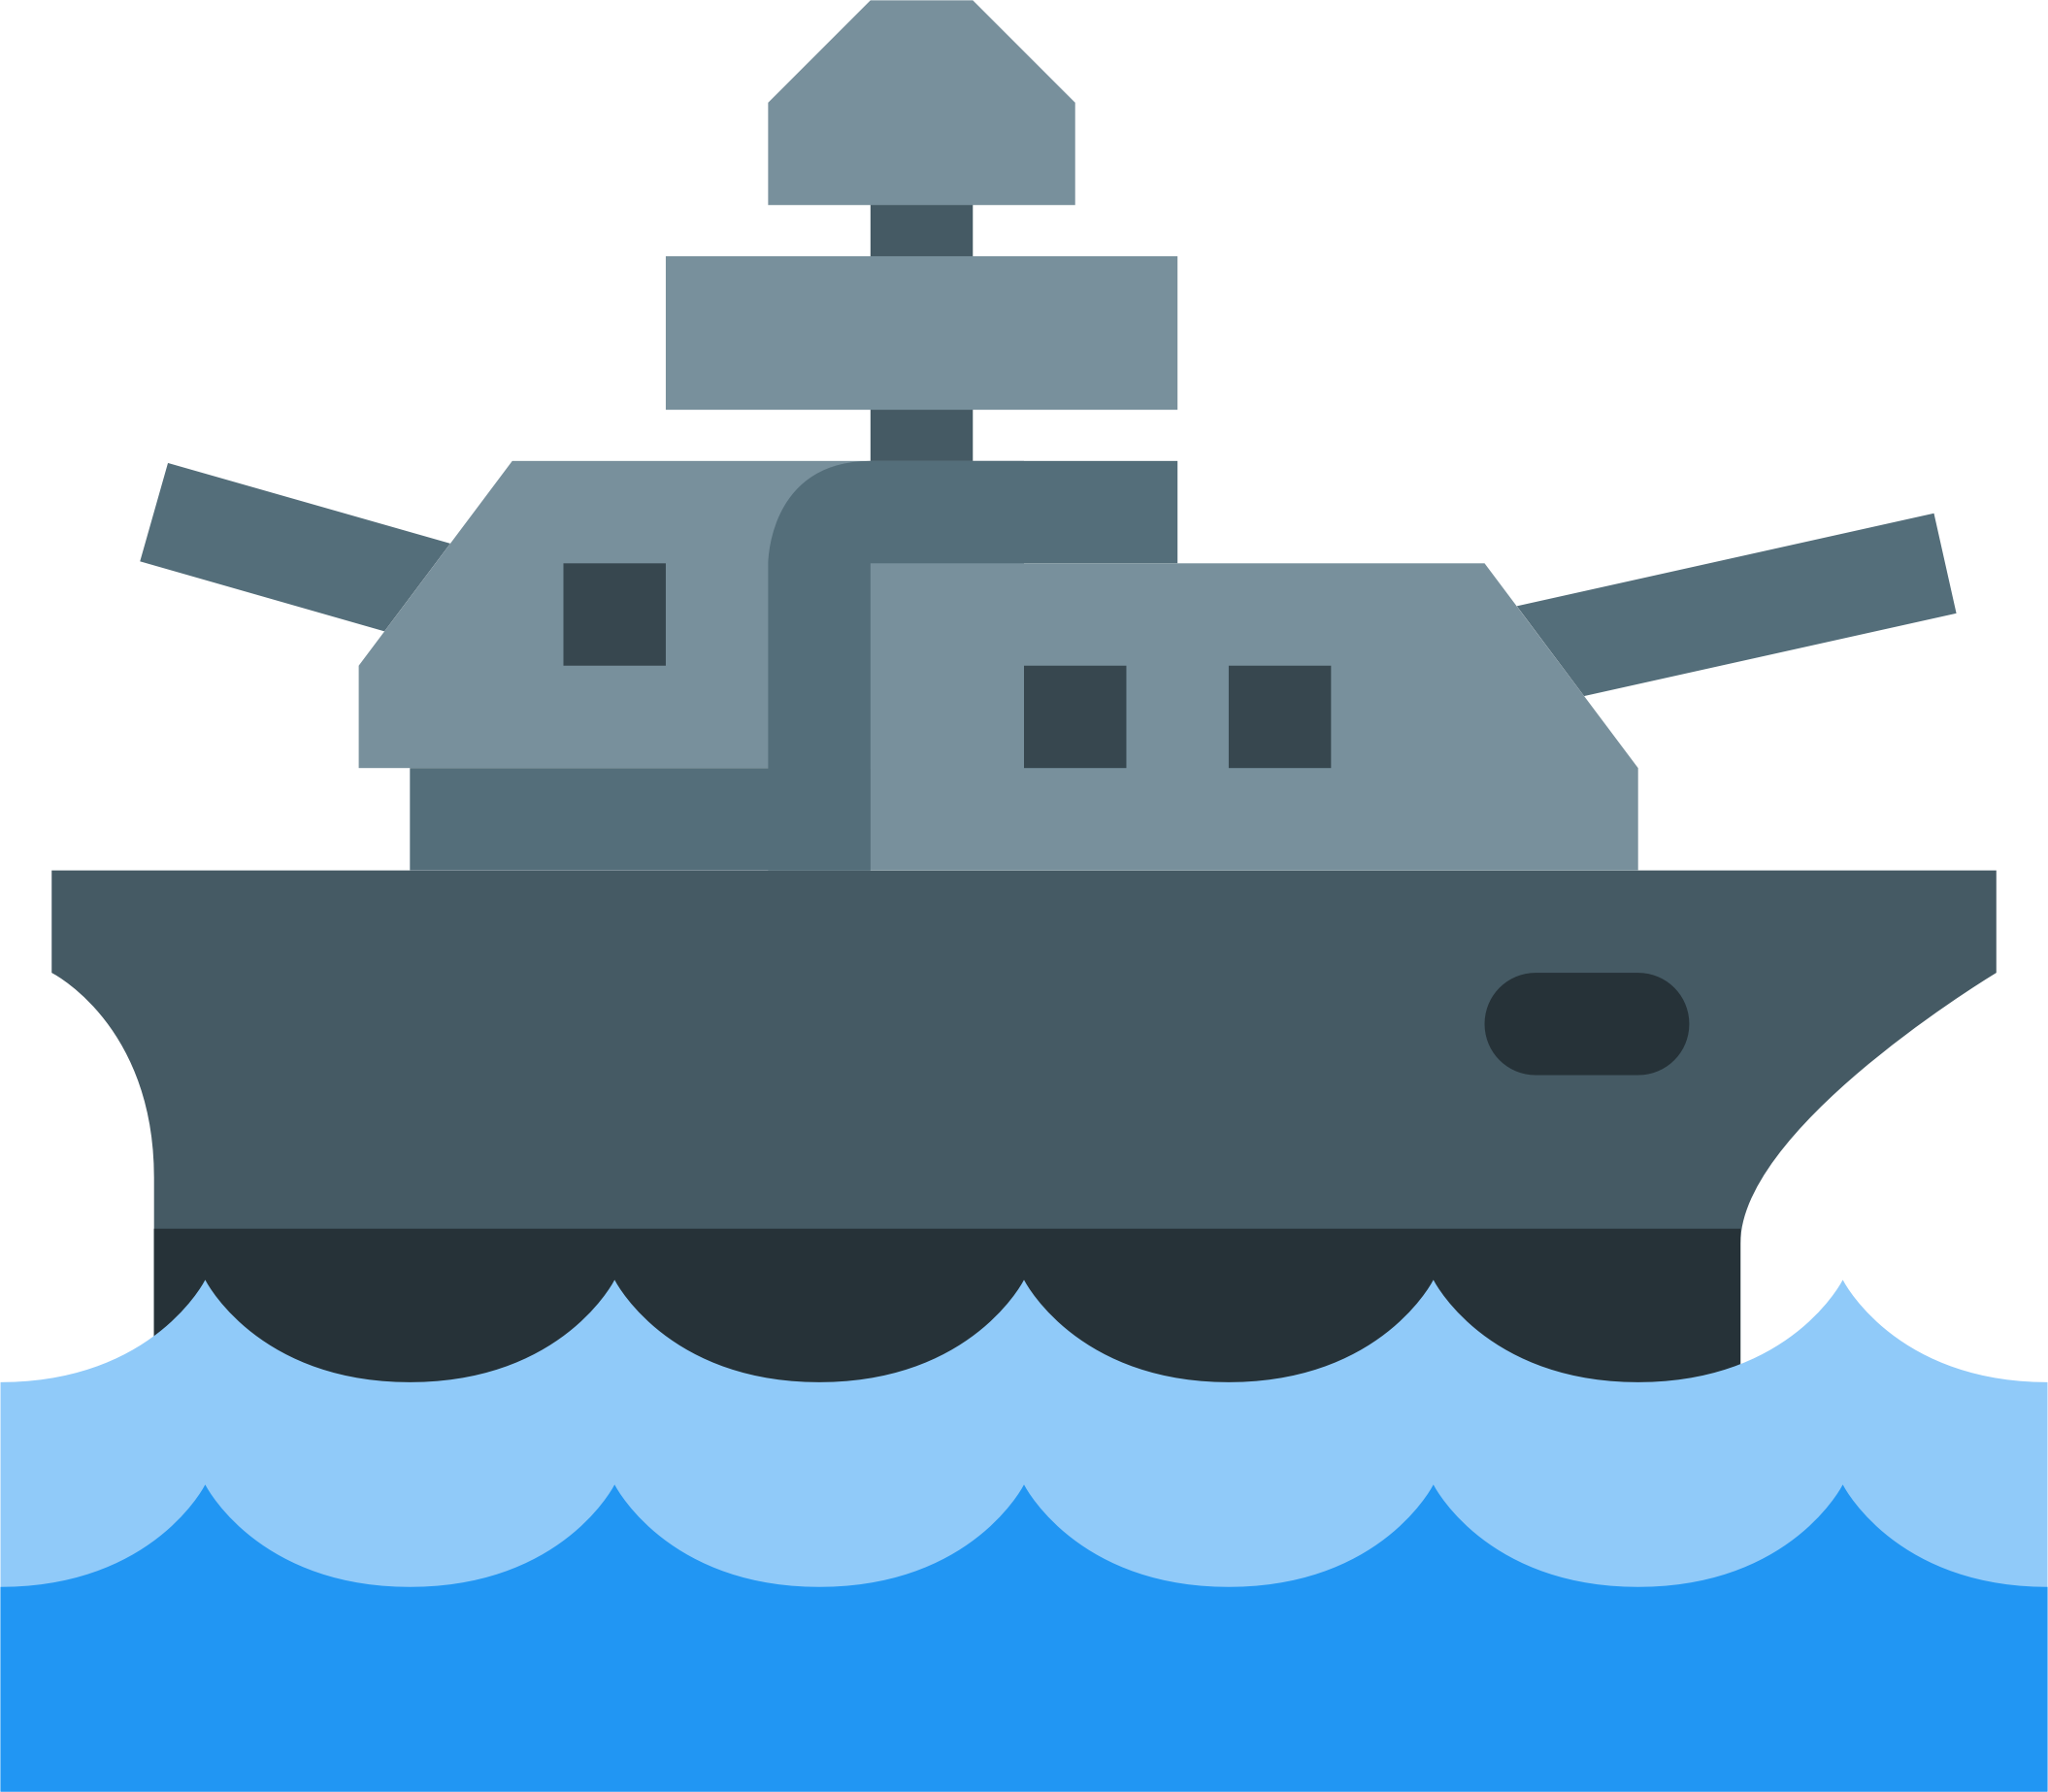 png royalty free download Battleship clipart. Big image png.